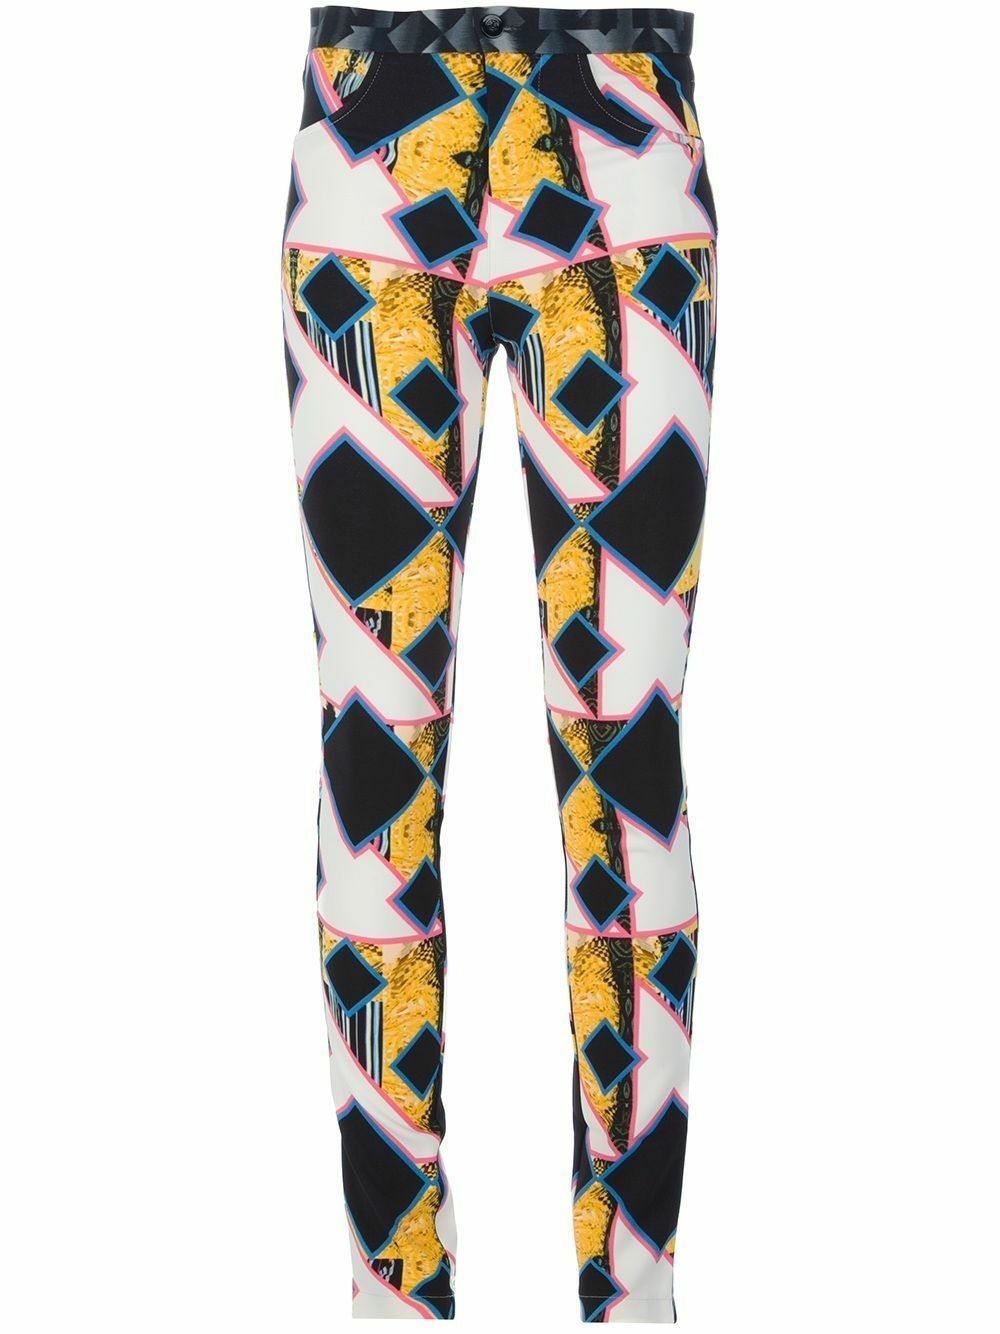 Peter Pilotto Eli shard diamond print trousers SELFRIDGES